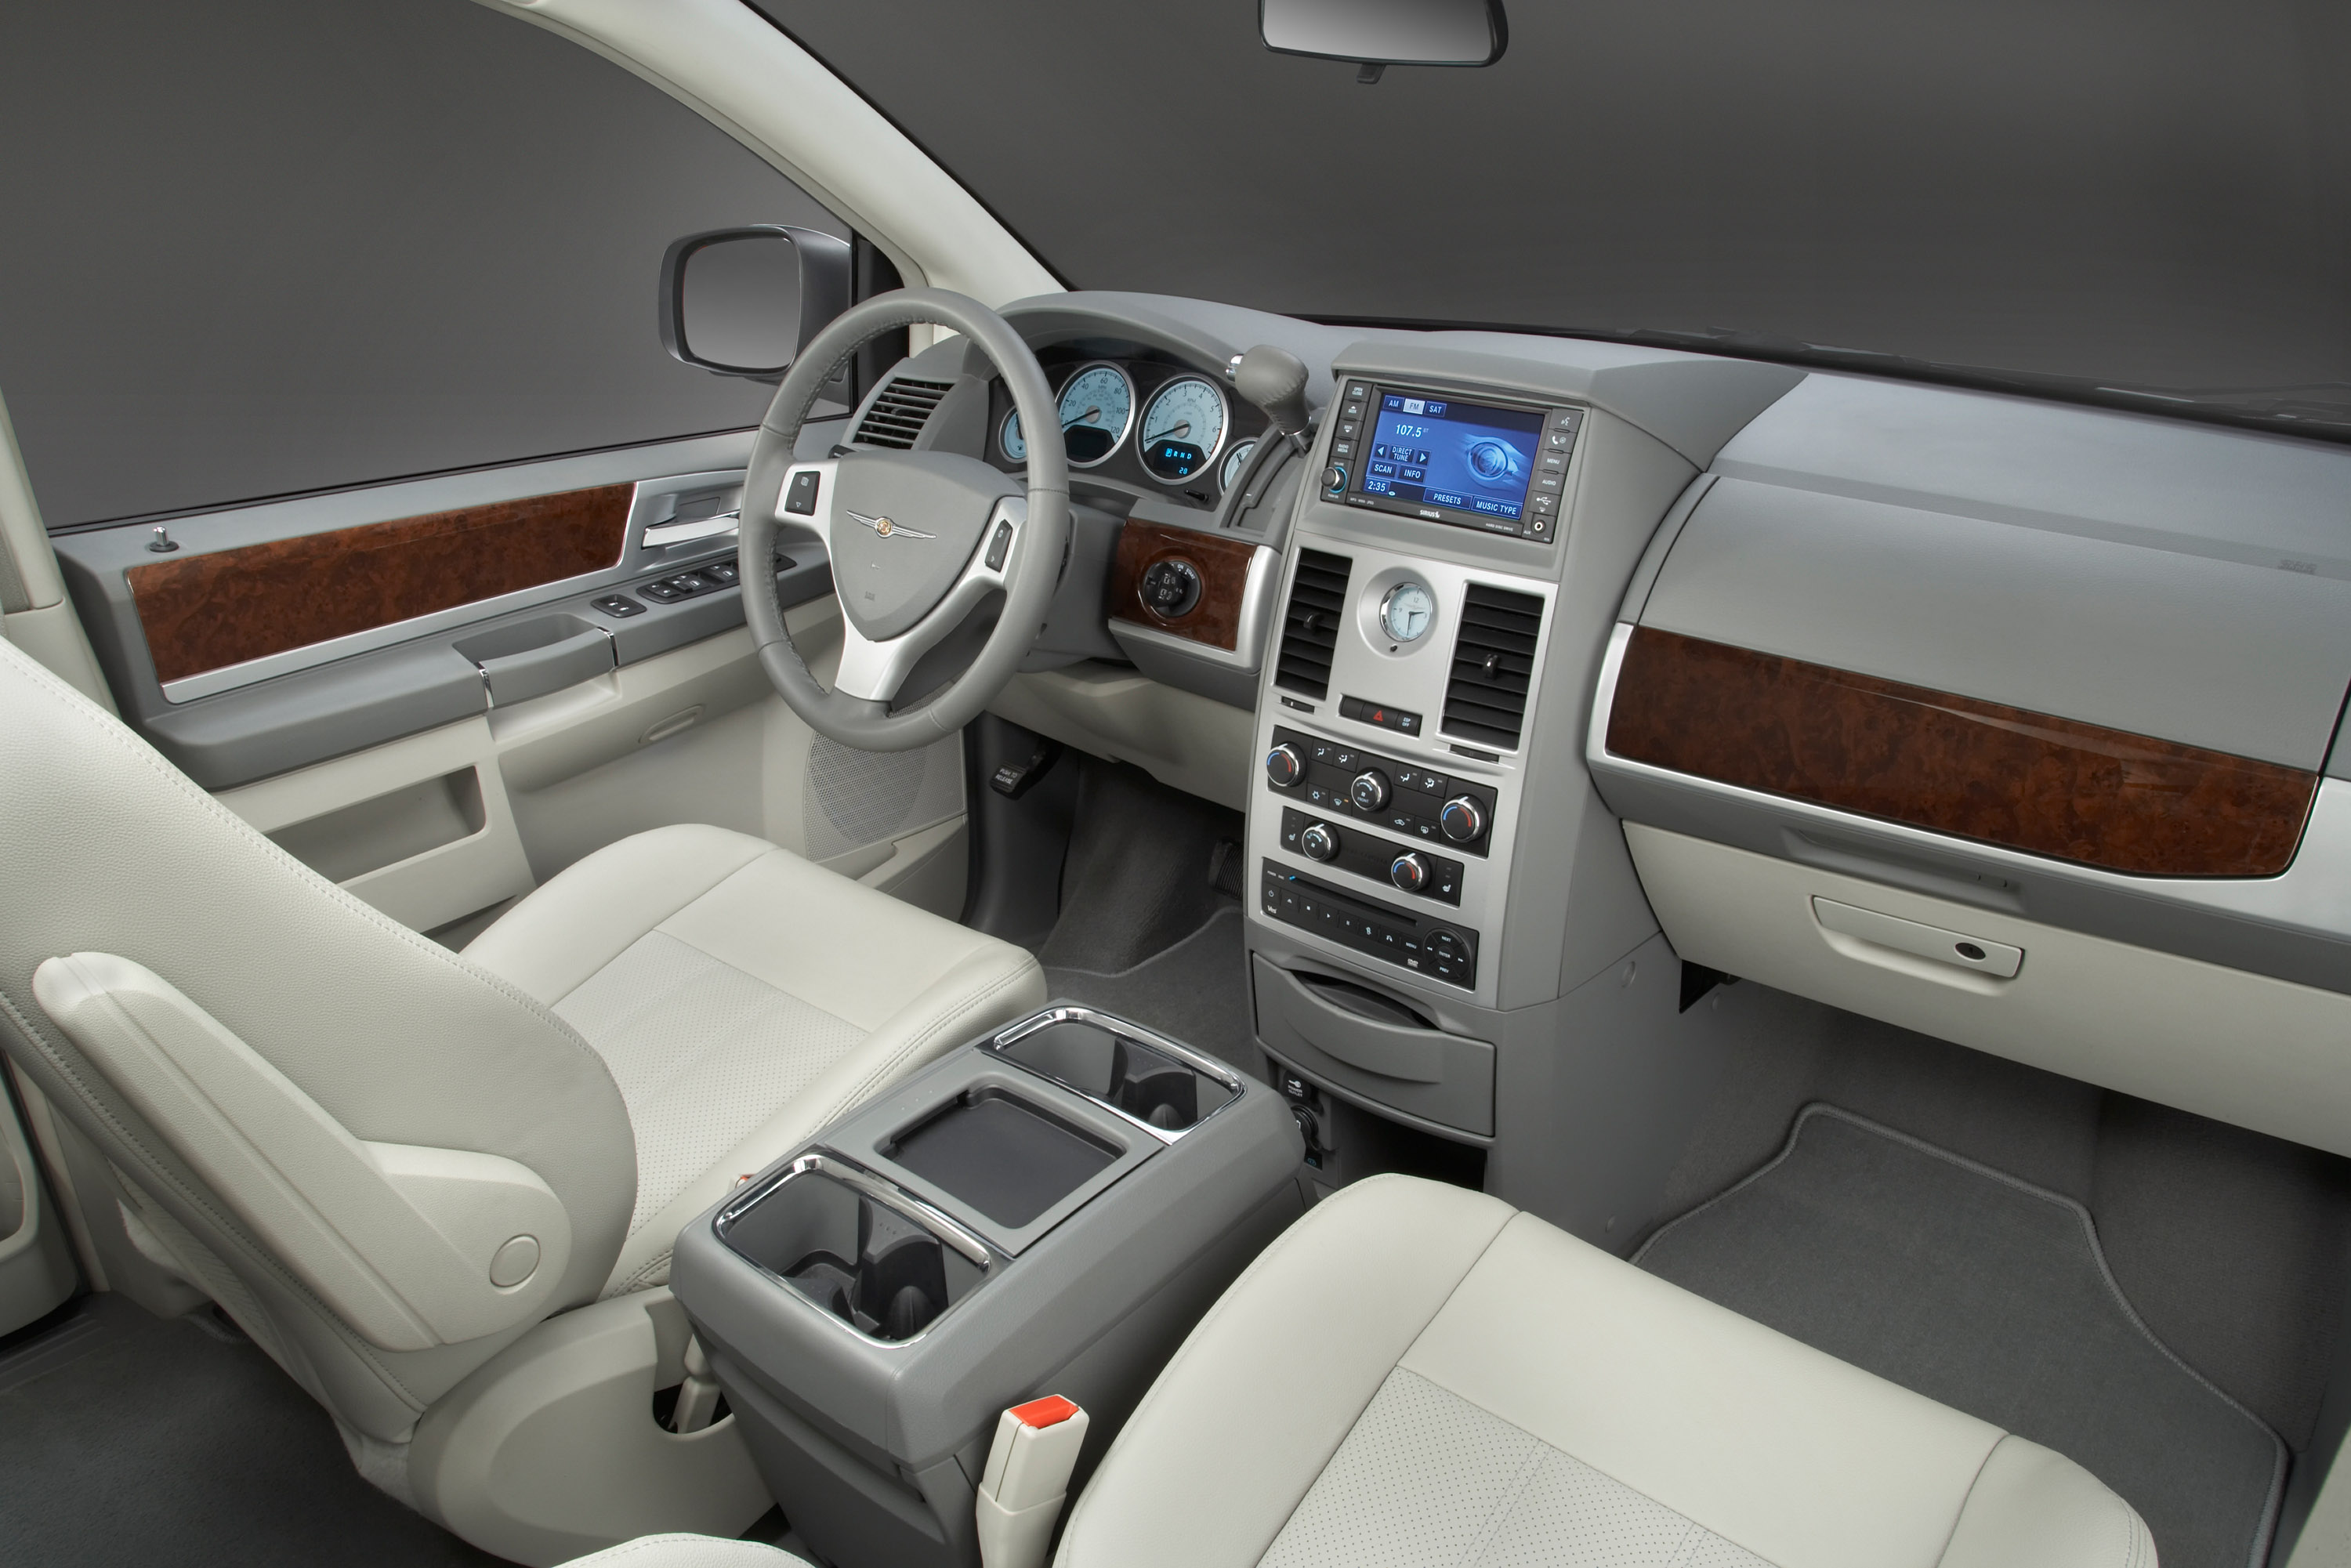 2009 chrysler town country 25th anniversary edition